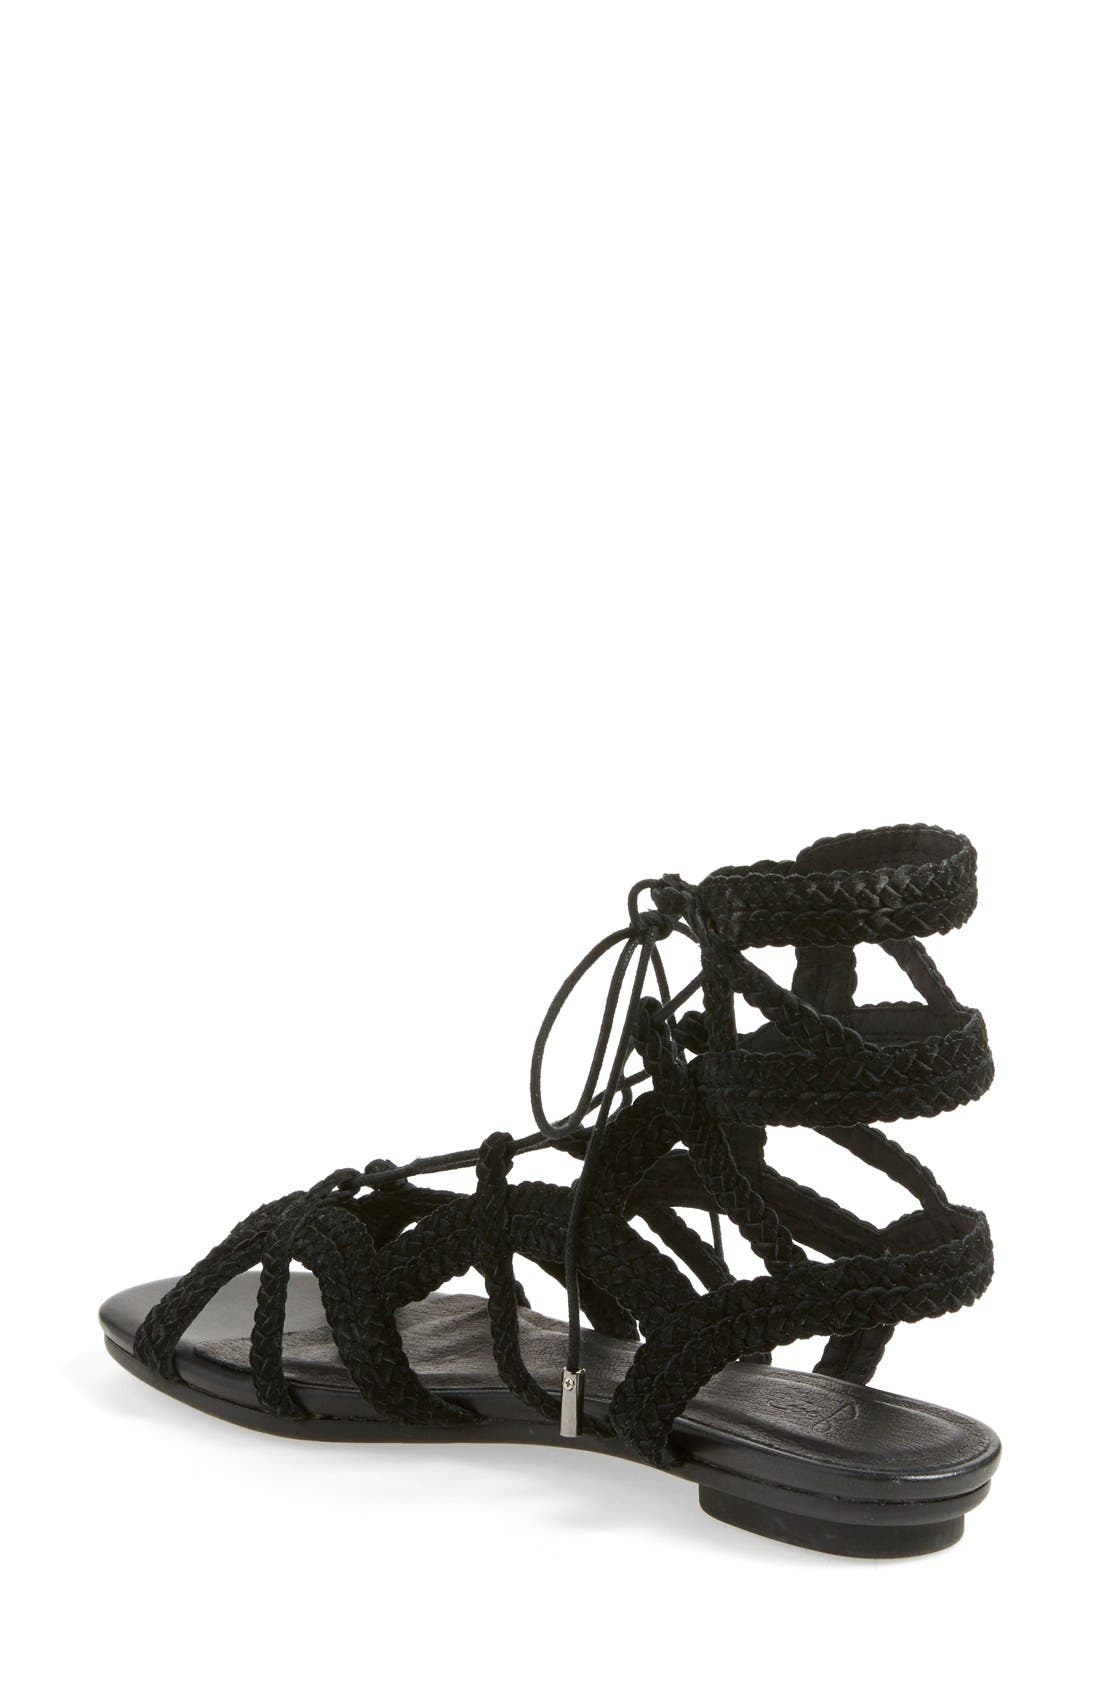 Alternate Image 2  - Joie 'Fynn' Gladiator Sandal (Women)